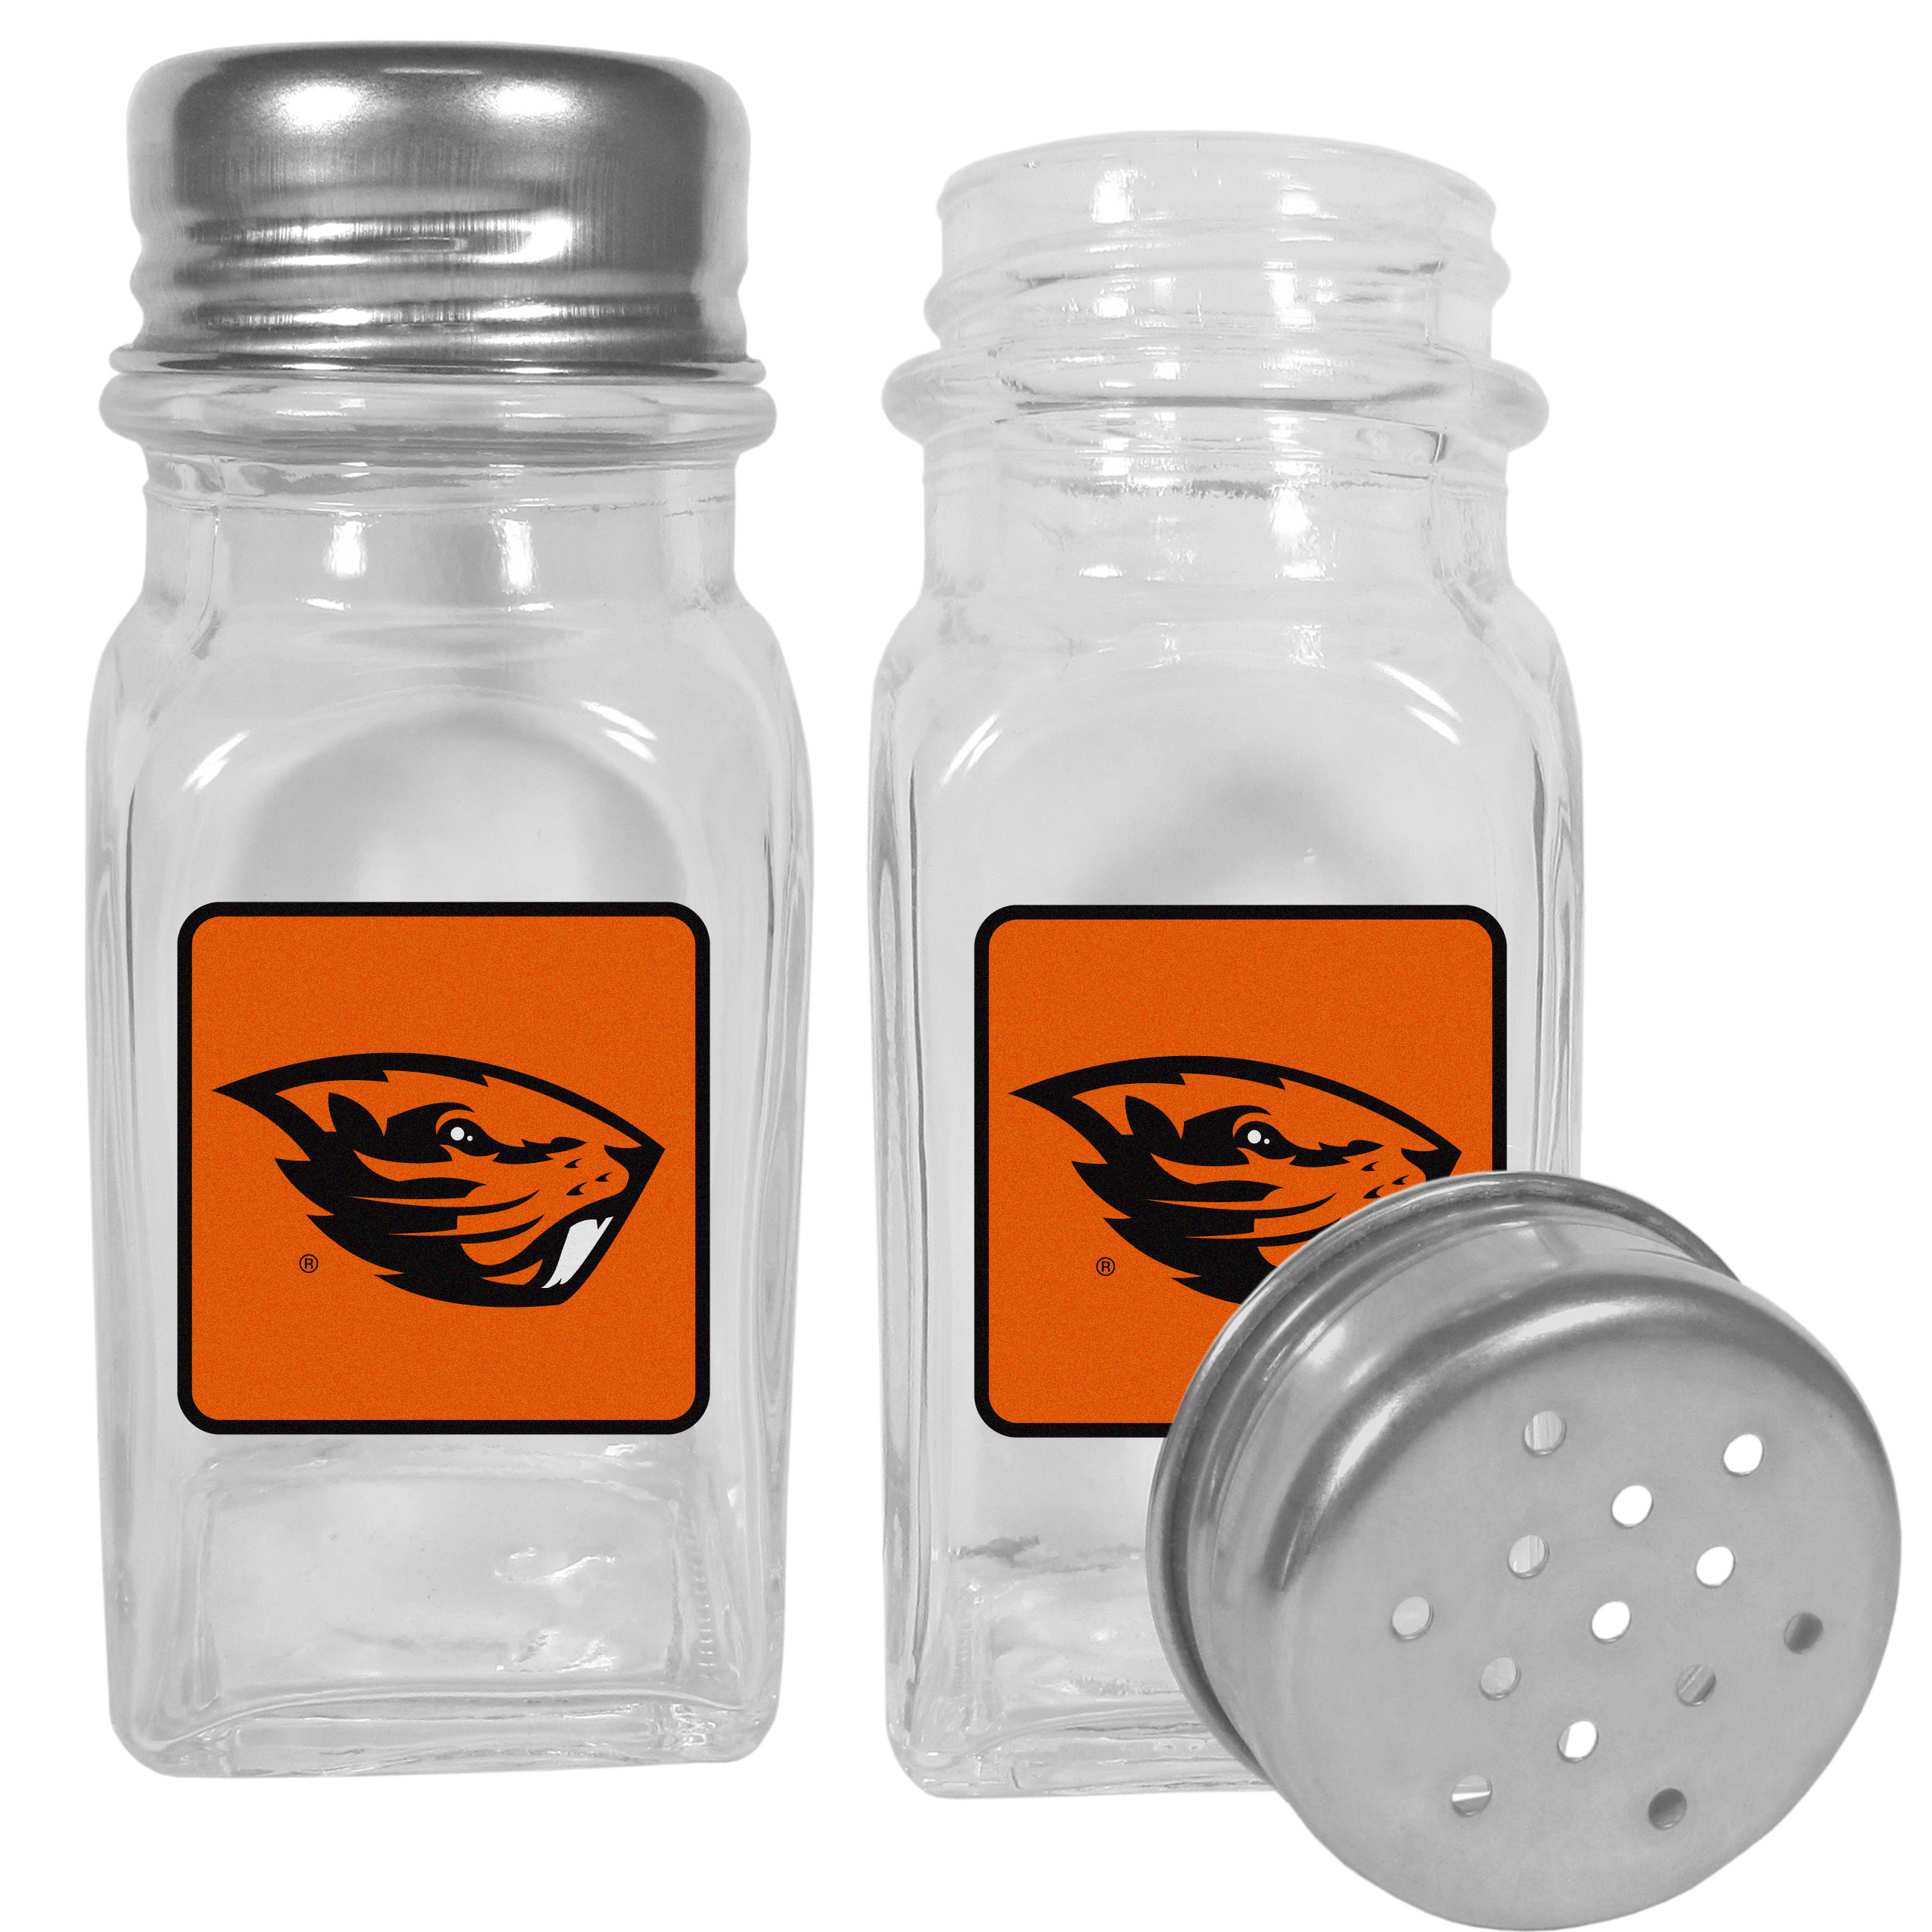 Oregon St. Beavers Graphics Salt and Pepper Shaker - No tailgate party is complete without your Oregon St. Beavers salt & pepper shakers featuring bright team logos. The diner replica salt and pepper shakers are glass with screw top lids. These team shakers are a great grill accessory whether you are barbecuing on the patio, picnicing or having a game day party.